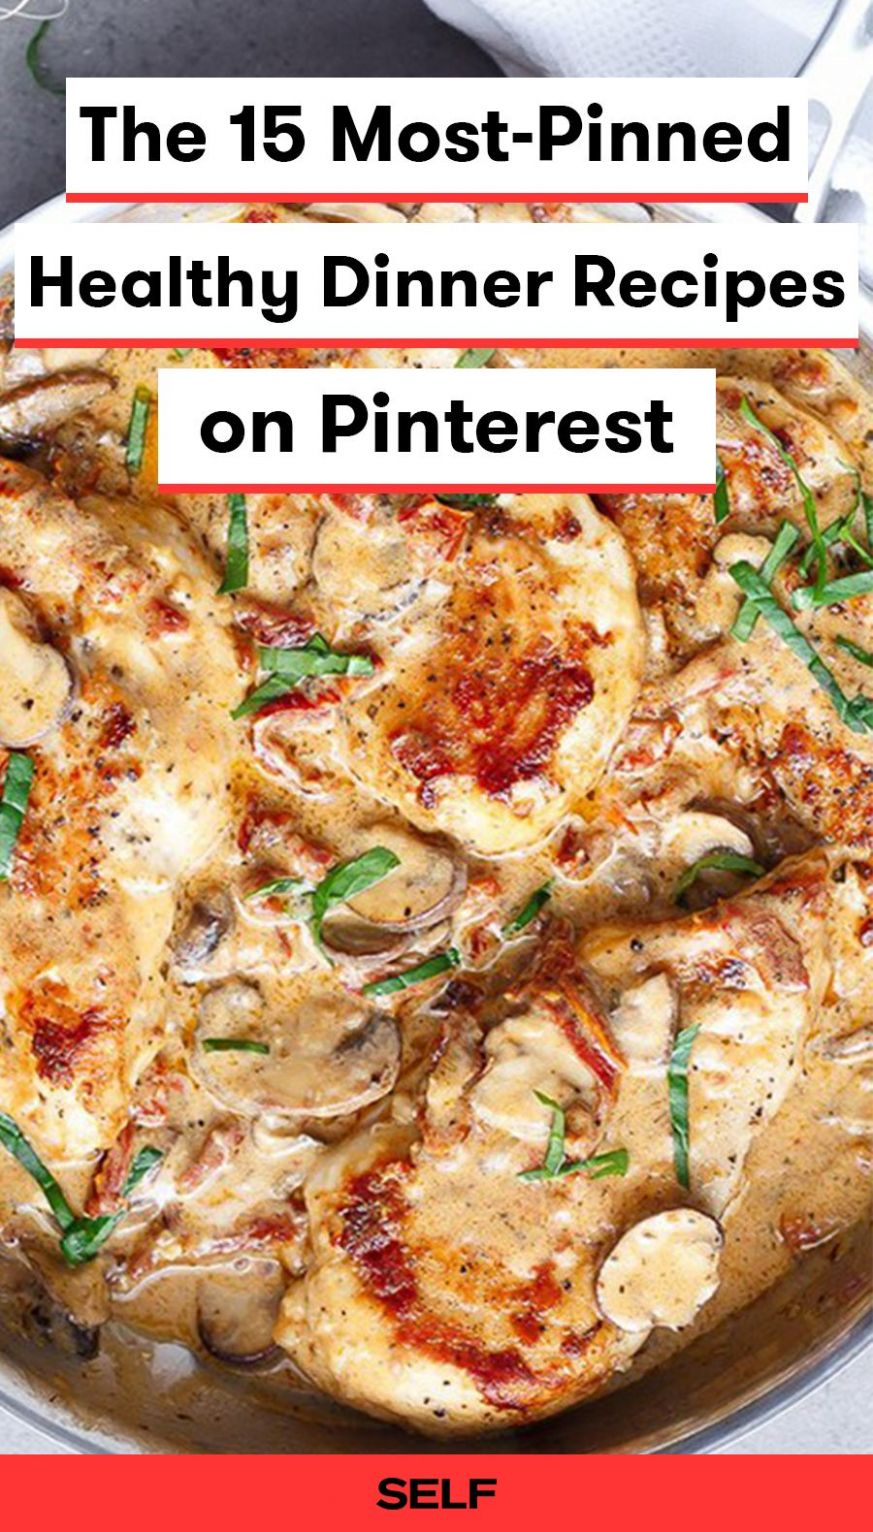 The 12 Most-Pinned Healthy Dinner Recipes on Pinterest | Healthy ..